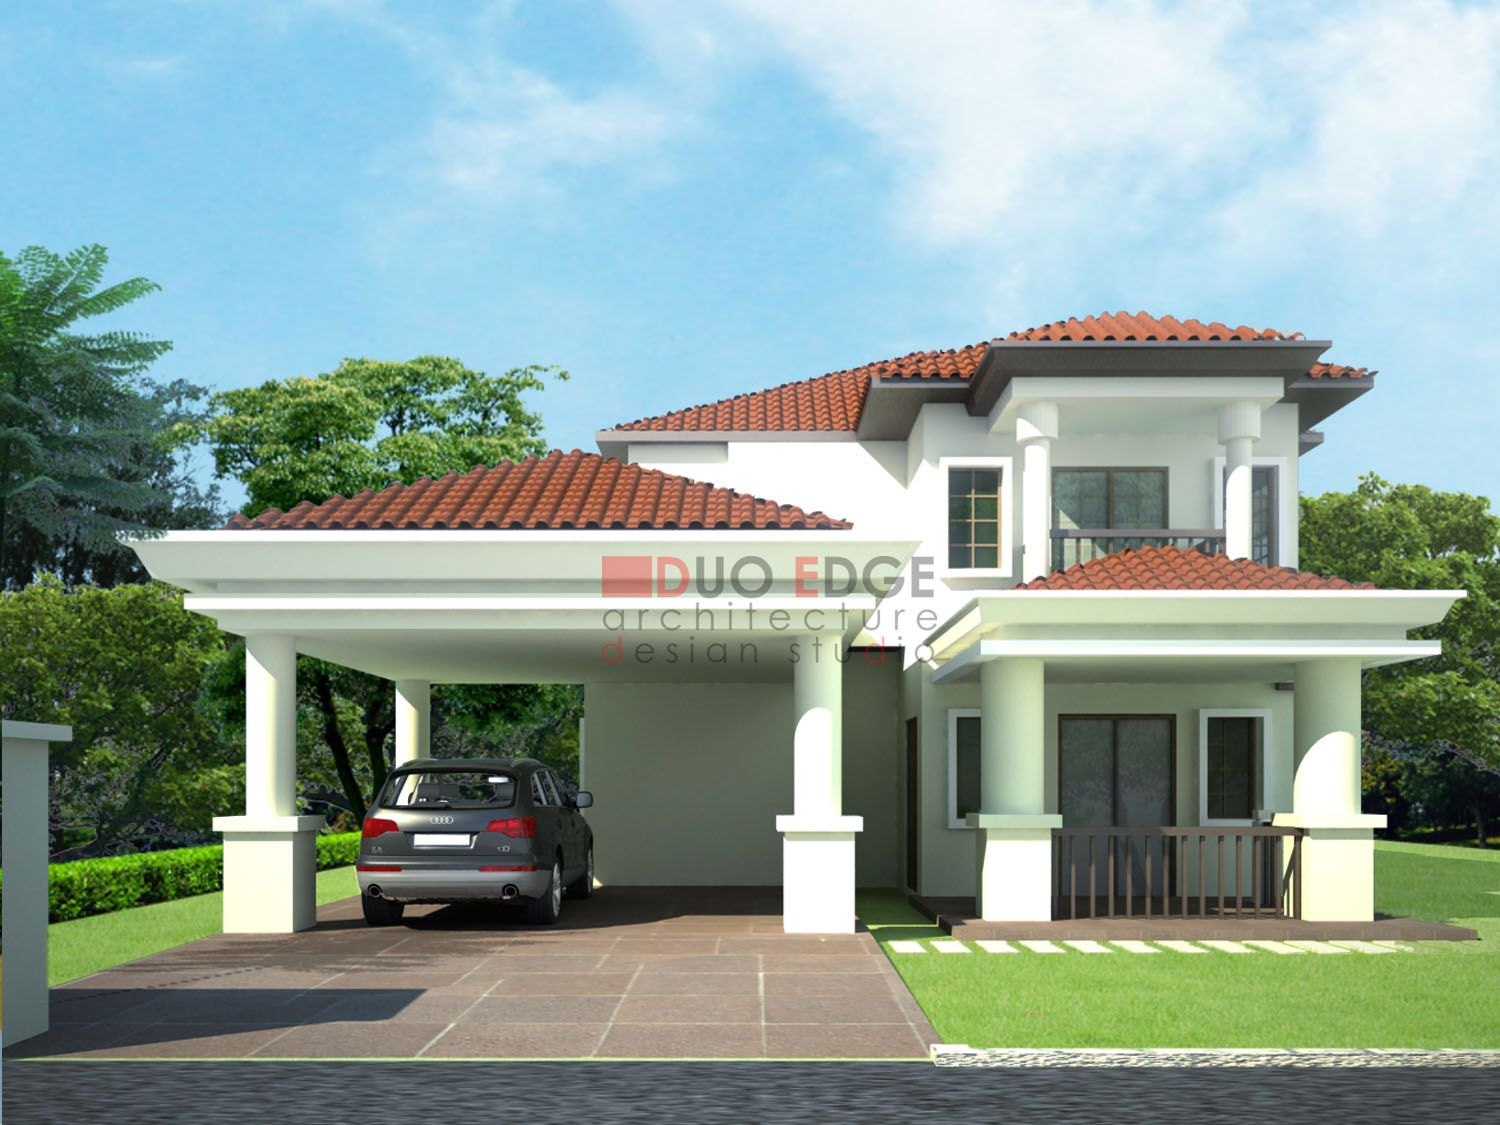 latest house design in philippines modern bungalow house - Latest Houses Design